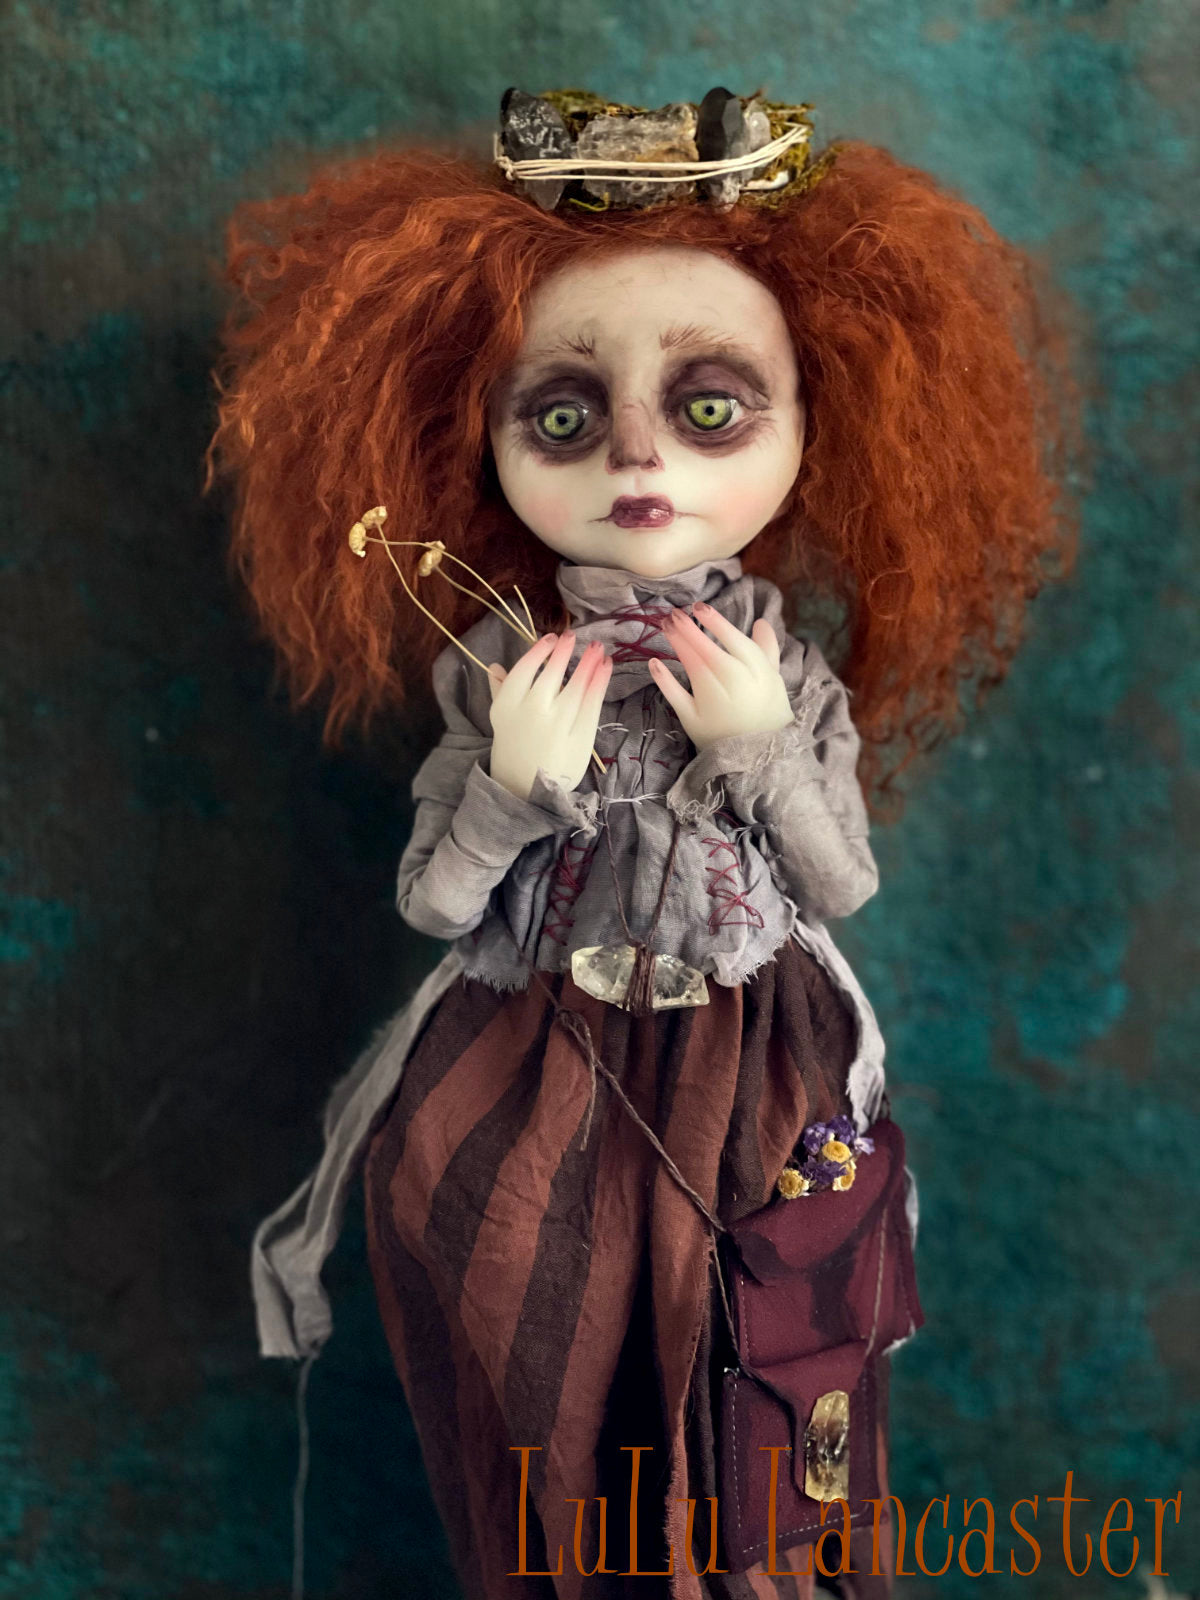 Verlee the Crystal Witch OOAK Art Doll LuLu Lancaster